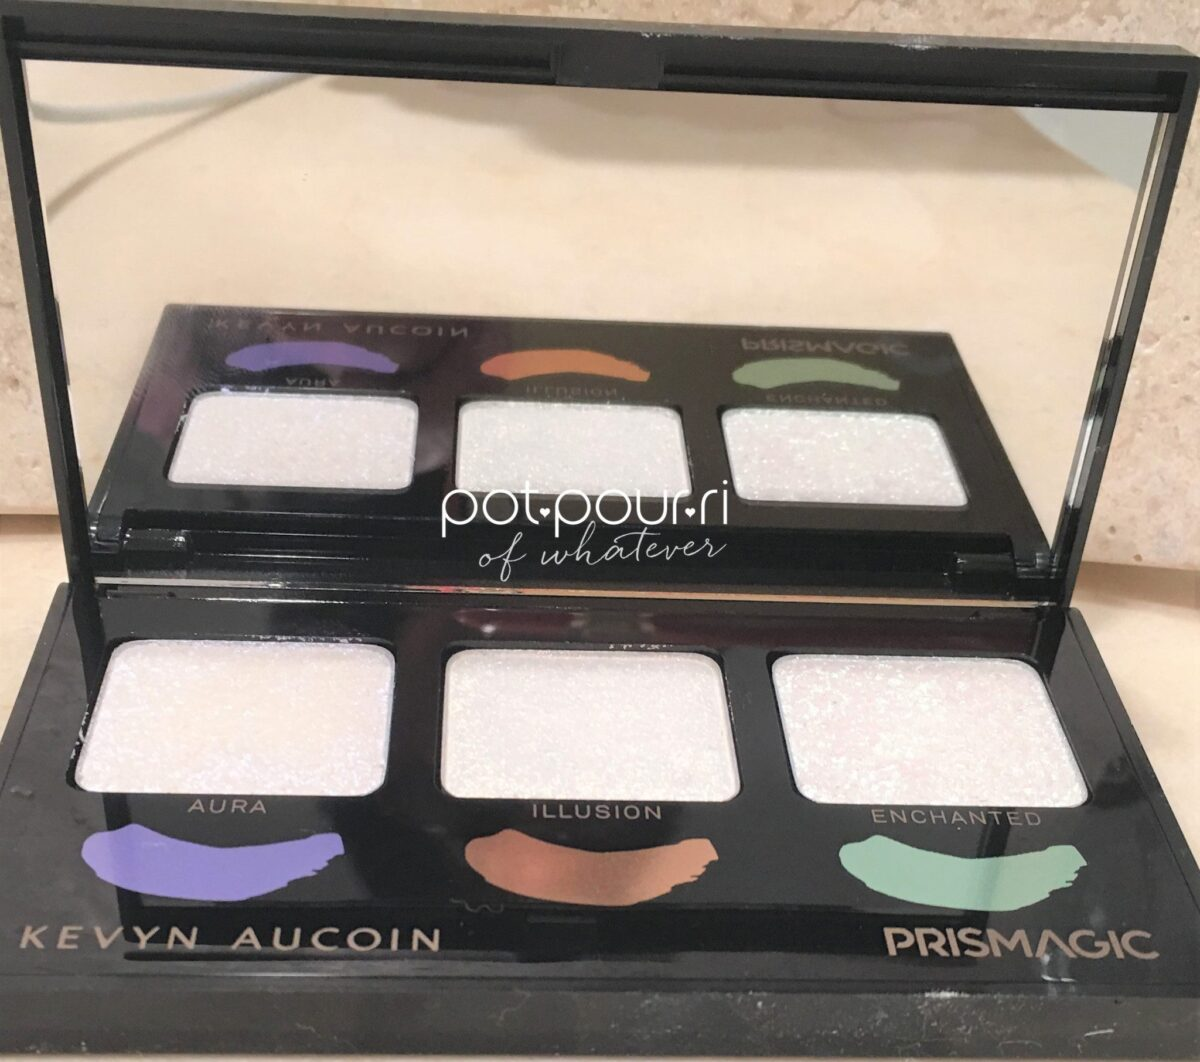 KEVYN AUCOIN PRISMAGIC HIGHLIGHTER TRIO COMPACT